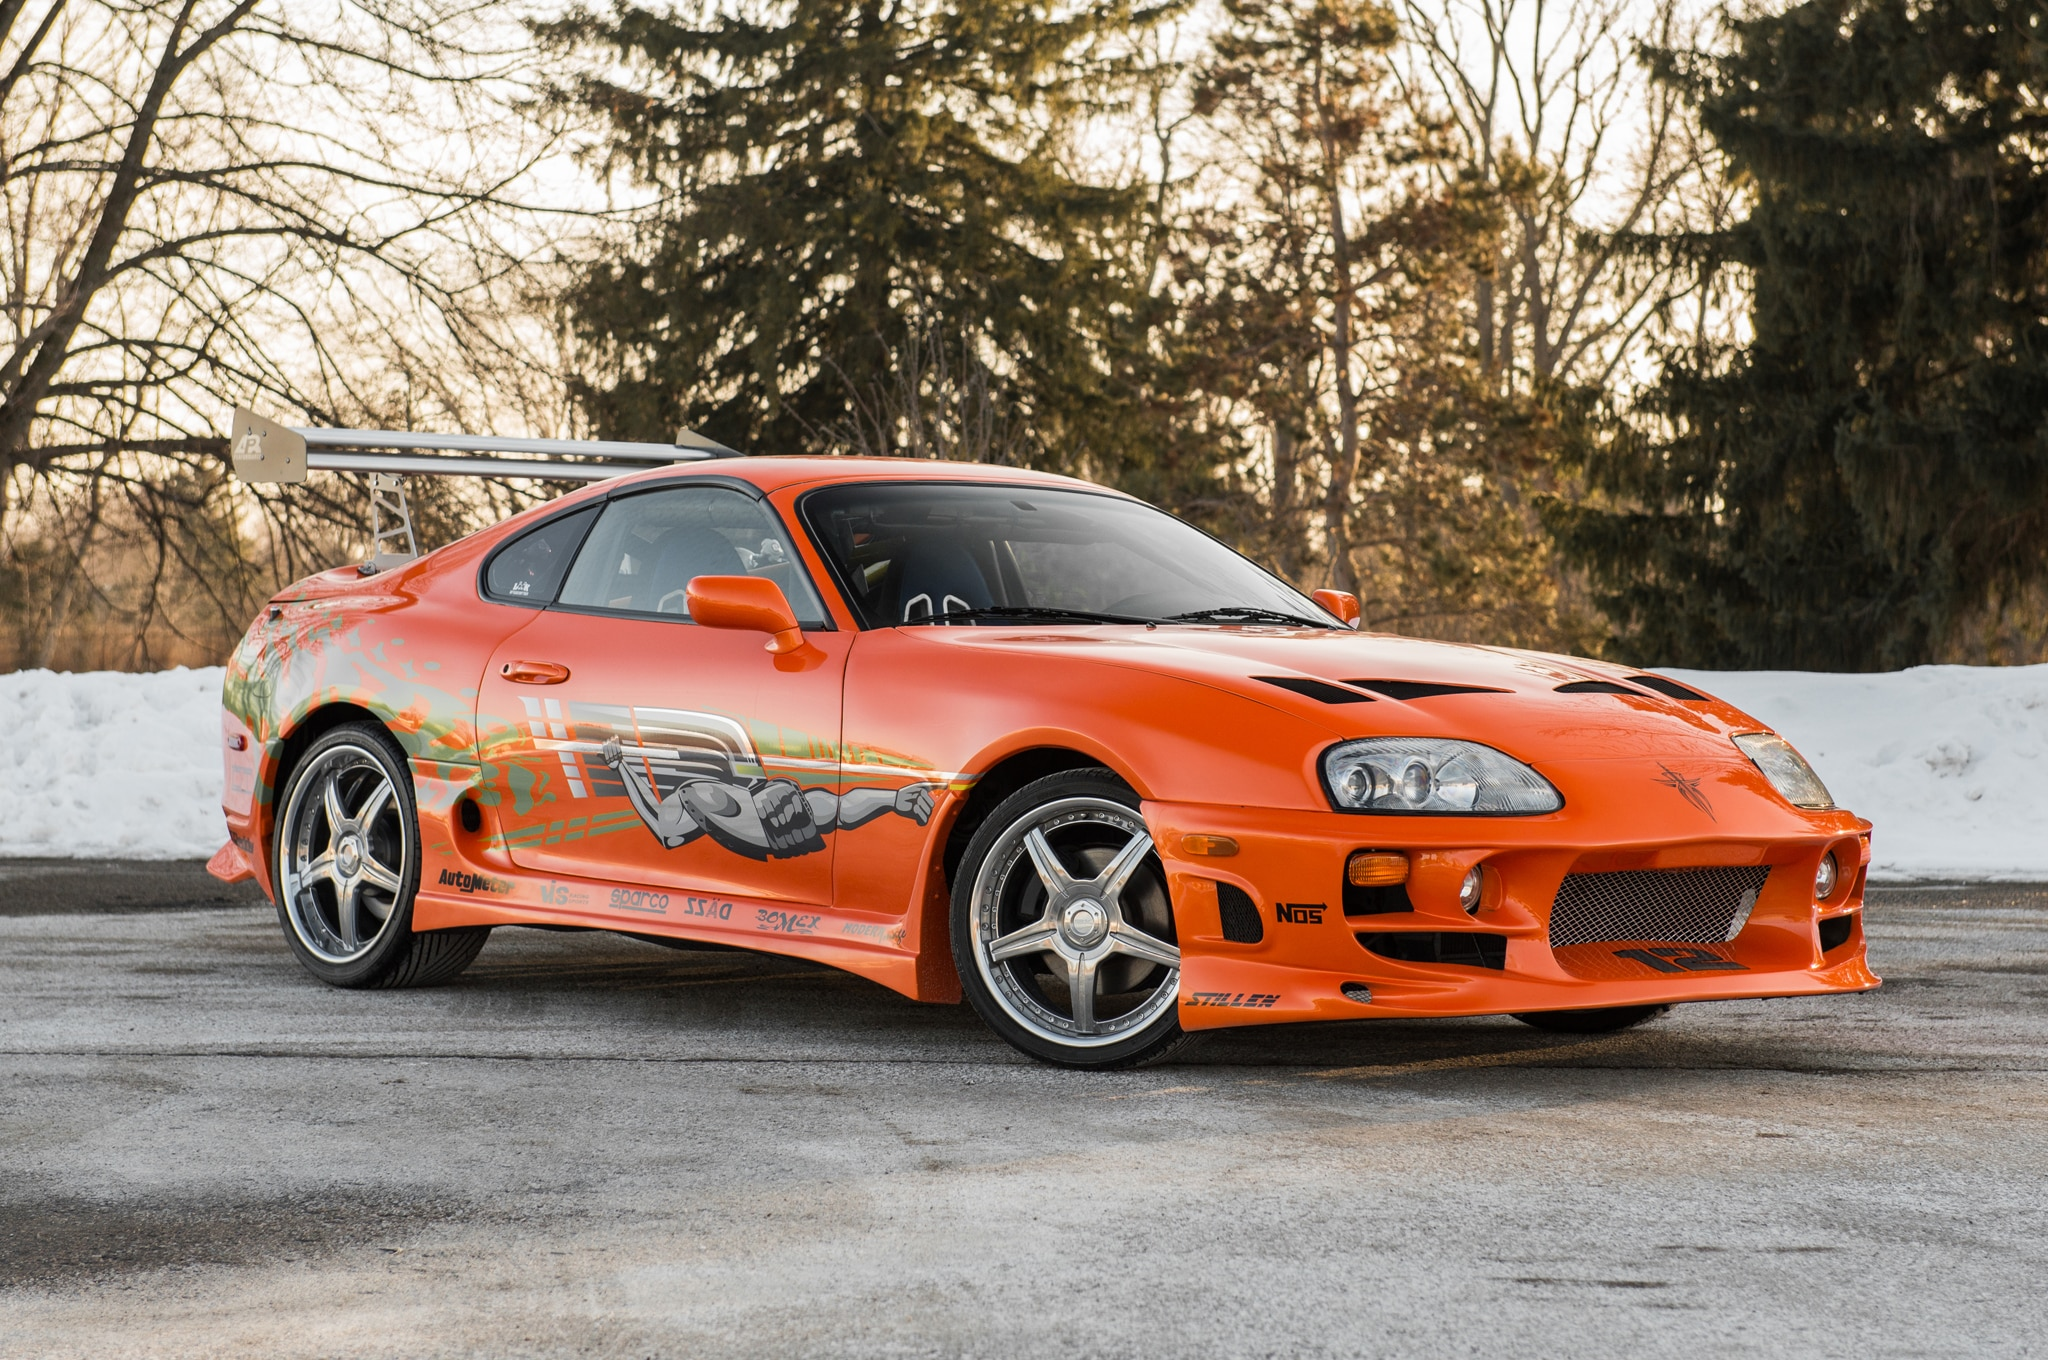 1993 Toyota Supra From The Fast And The Furious Front